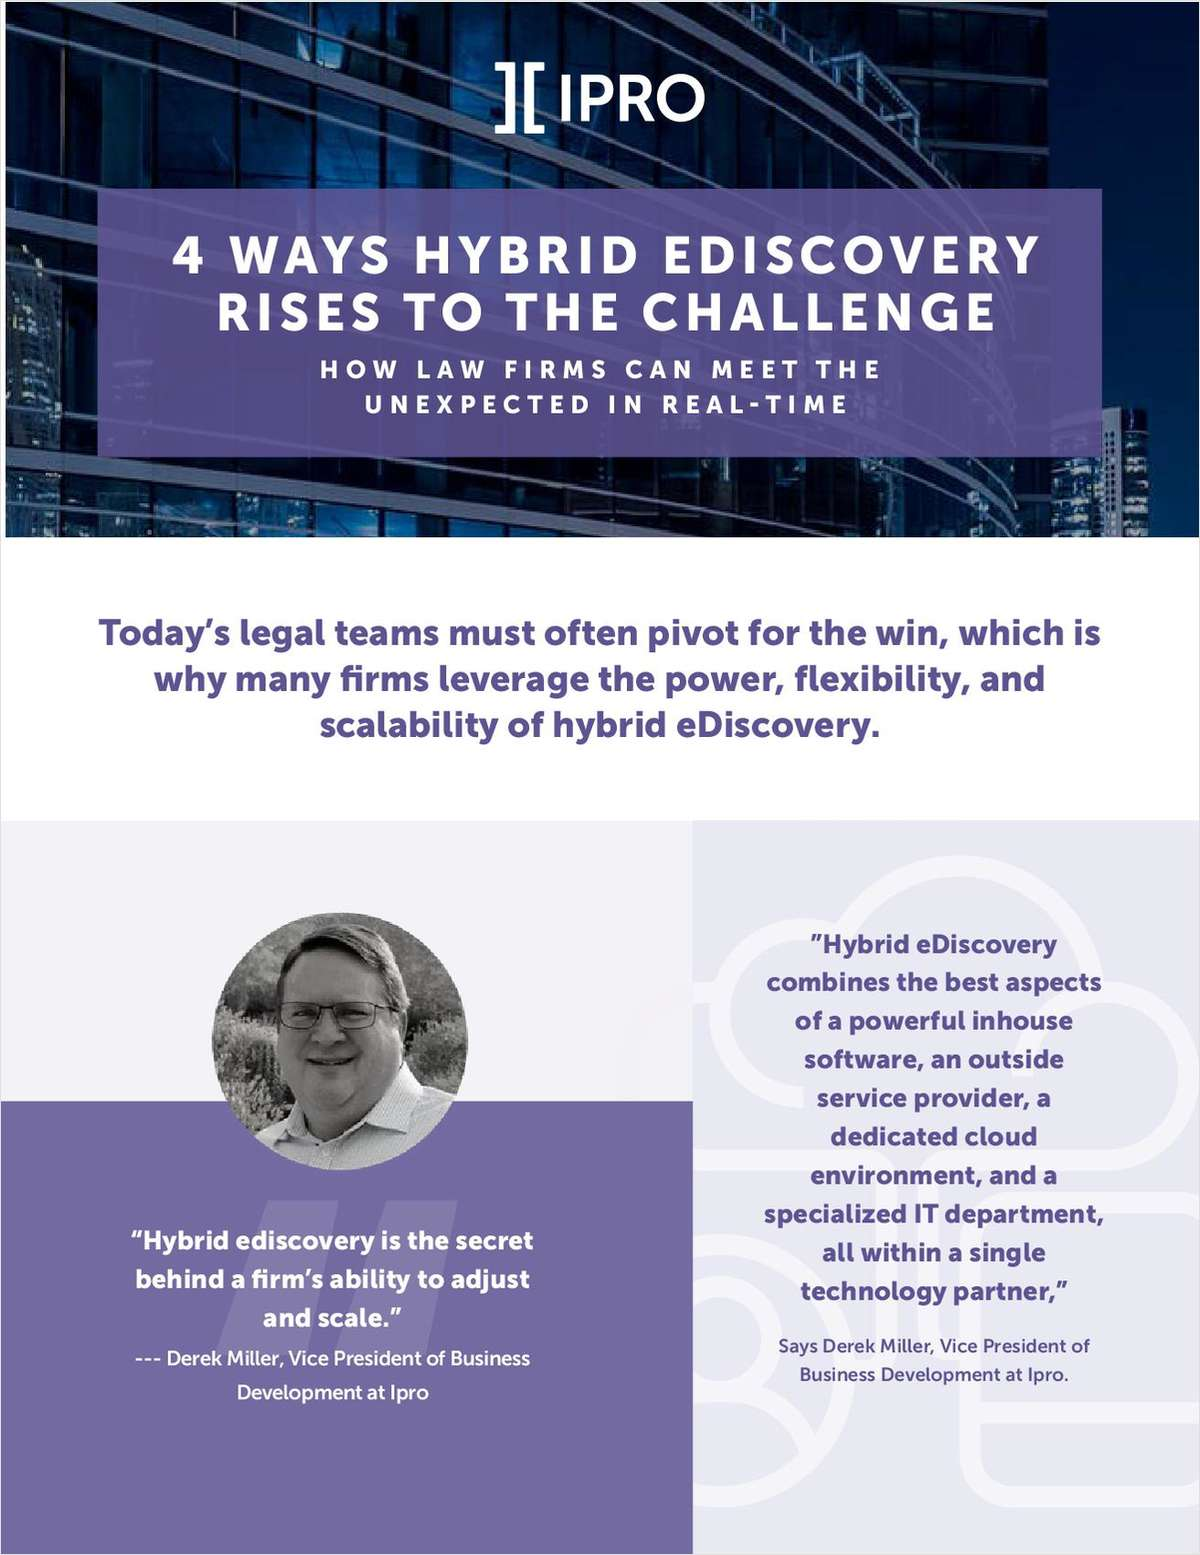 4 Ways Hybrid eDiscovery Rises to the Challenge